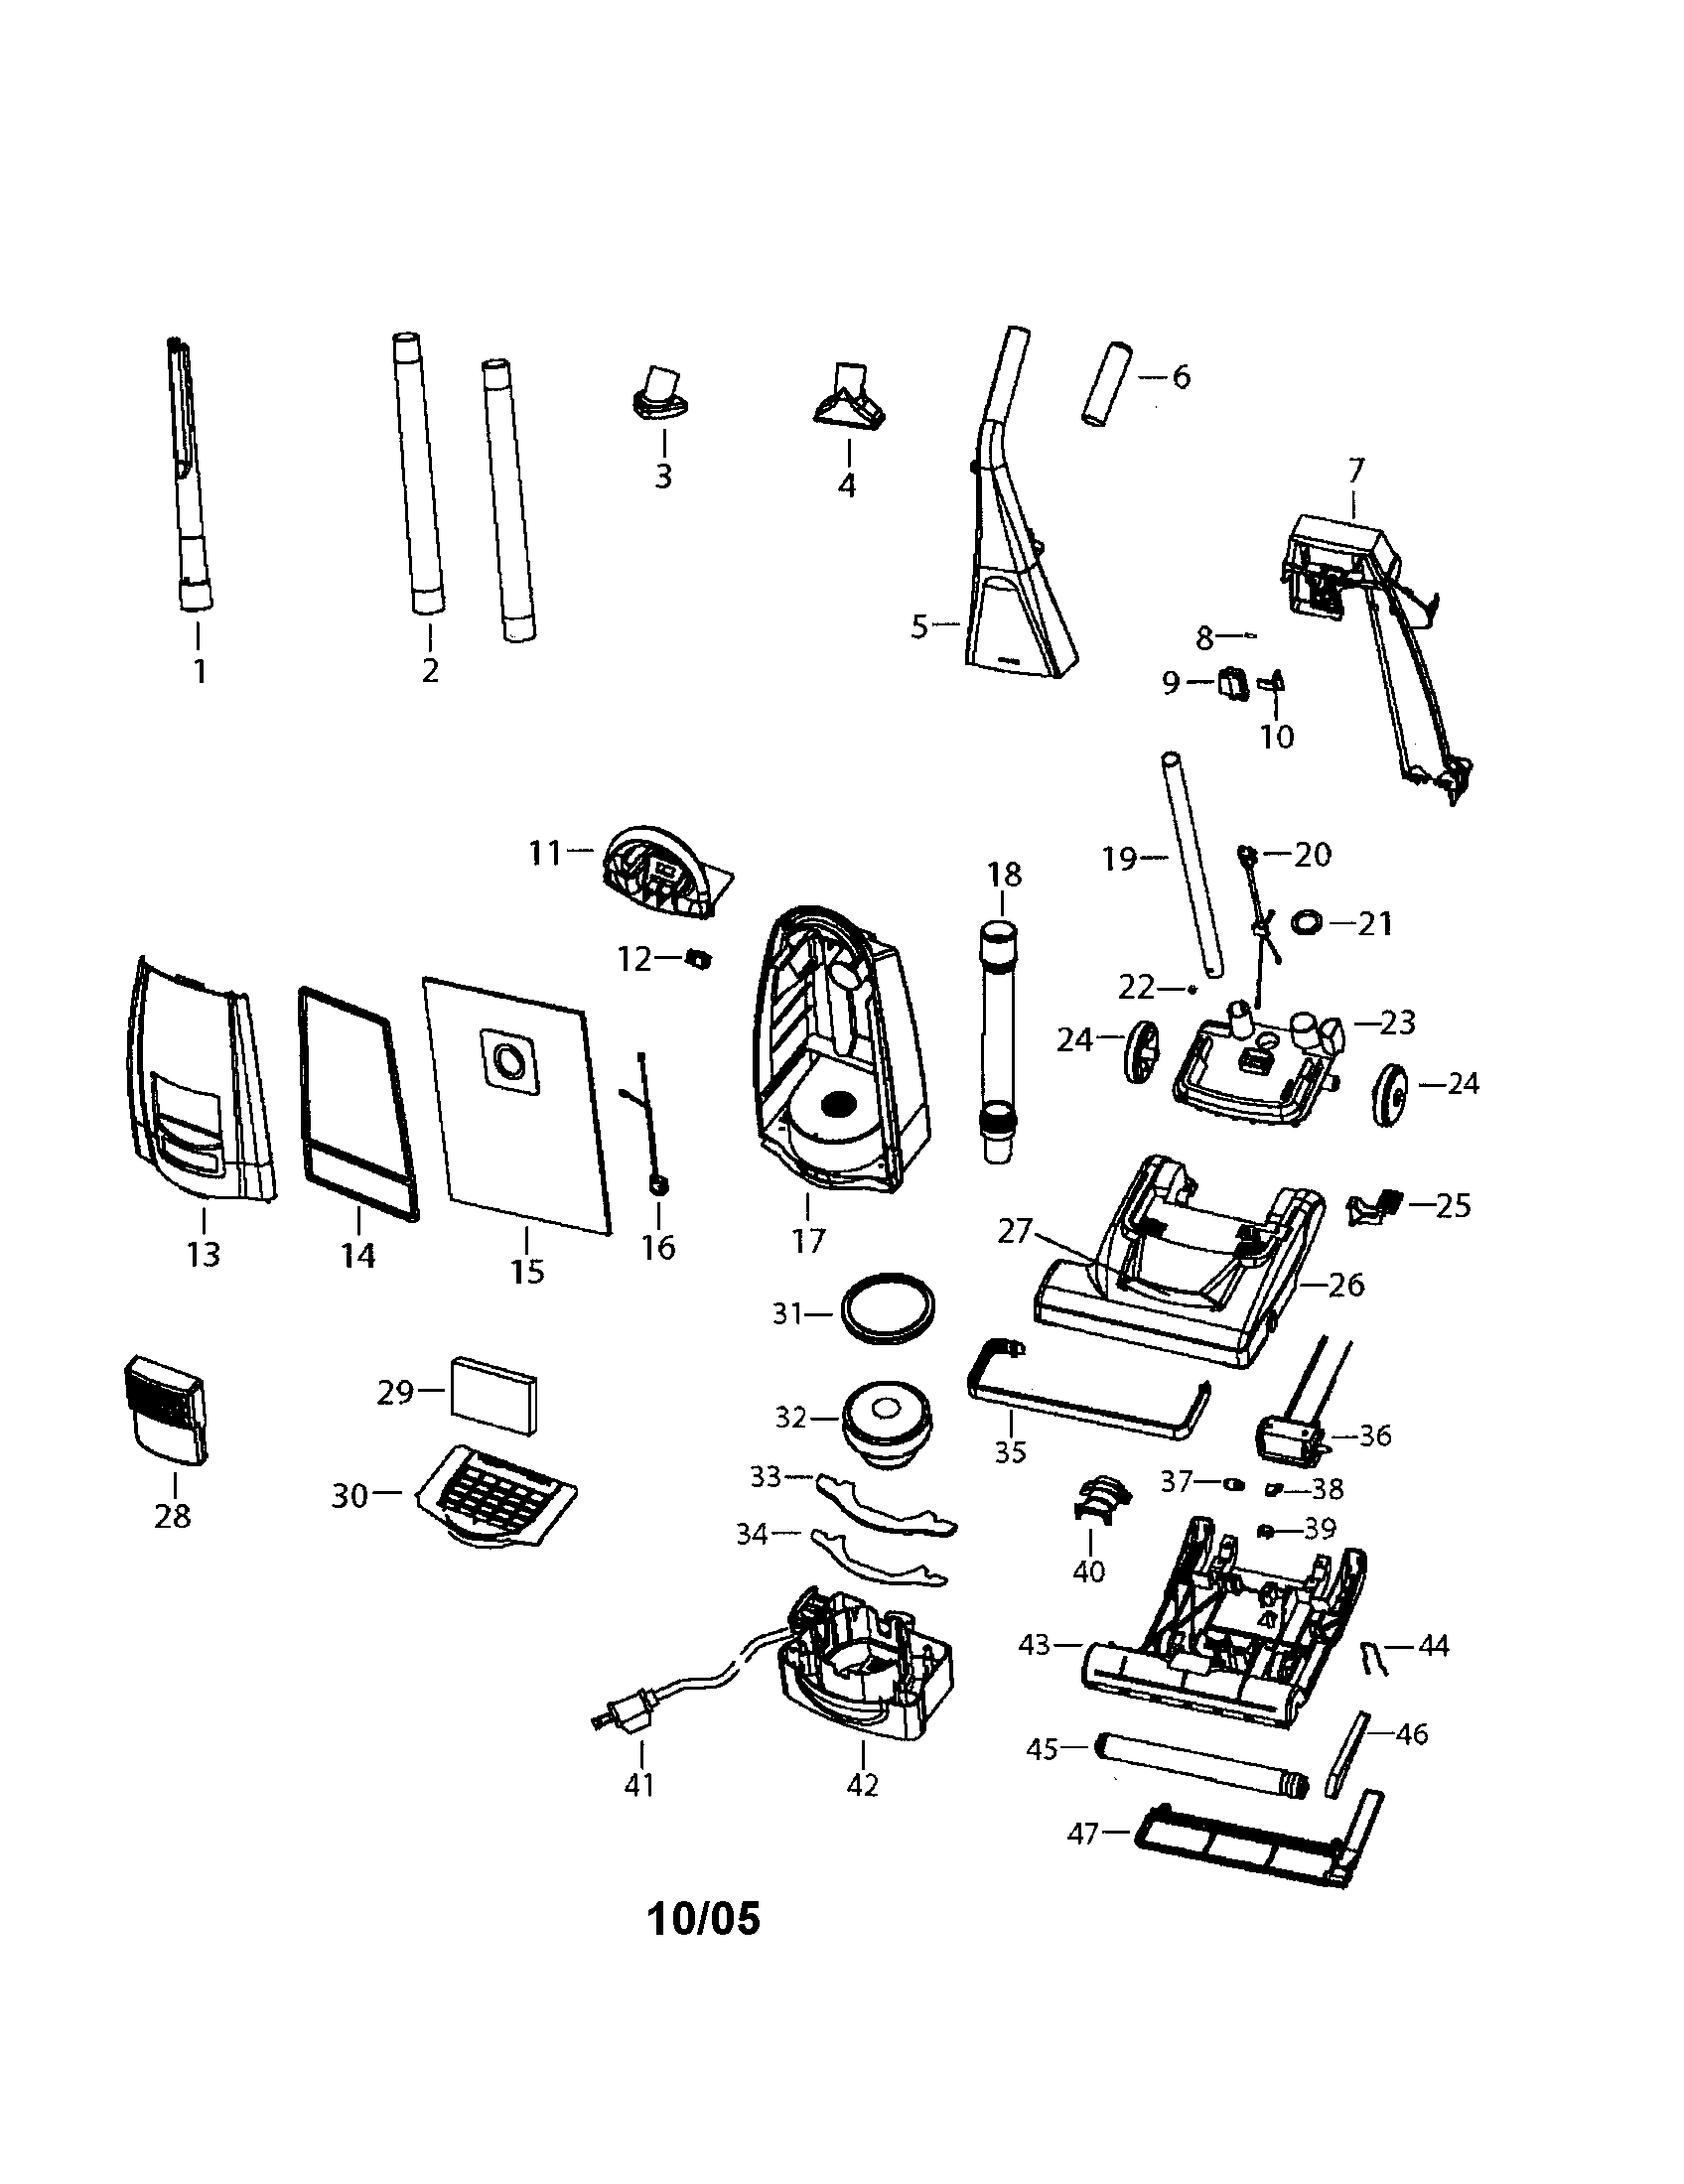 hight resolution of bissell carpet cleaner parts diagram bissell vacuum parts diagram vacuum cleaner diagram vacuum cleaner wiring diagrams